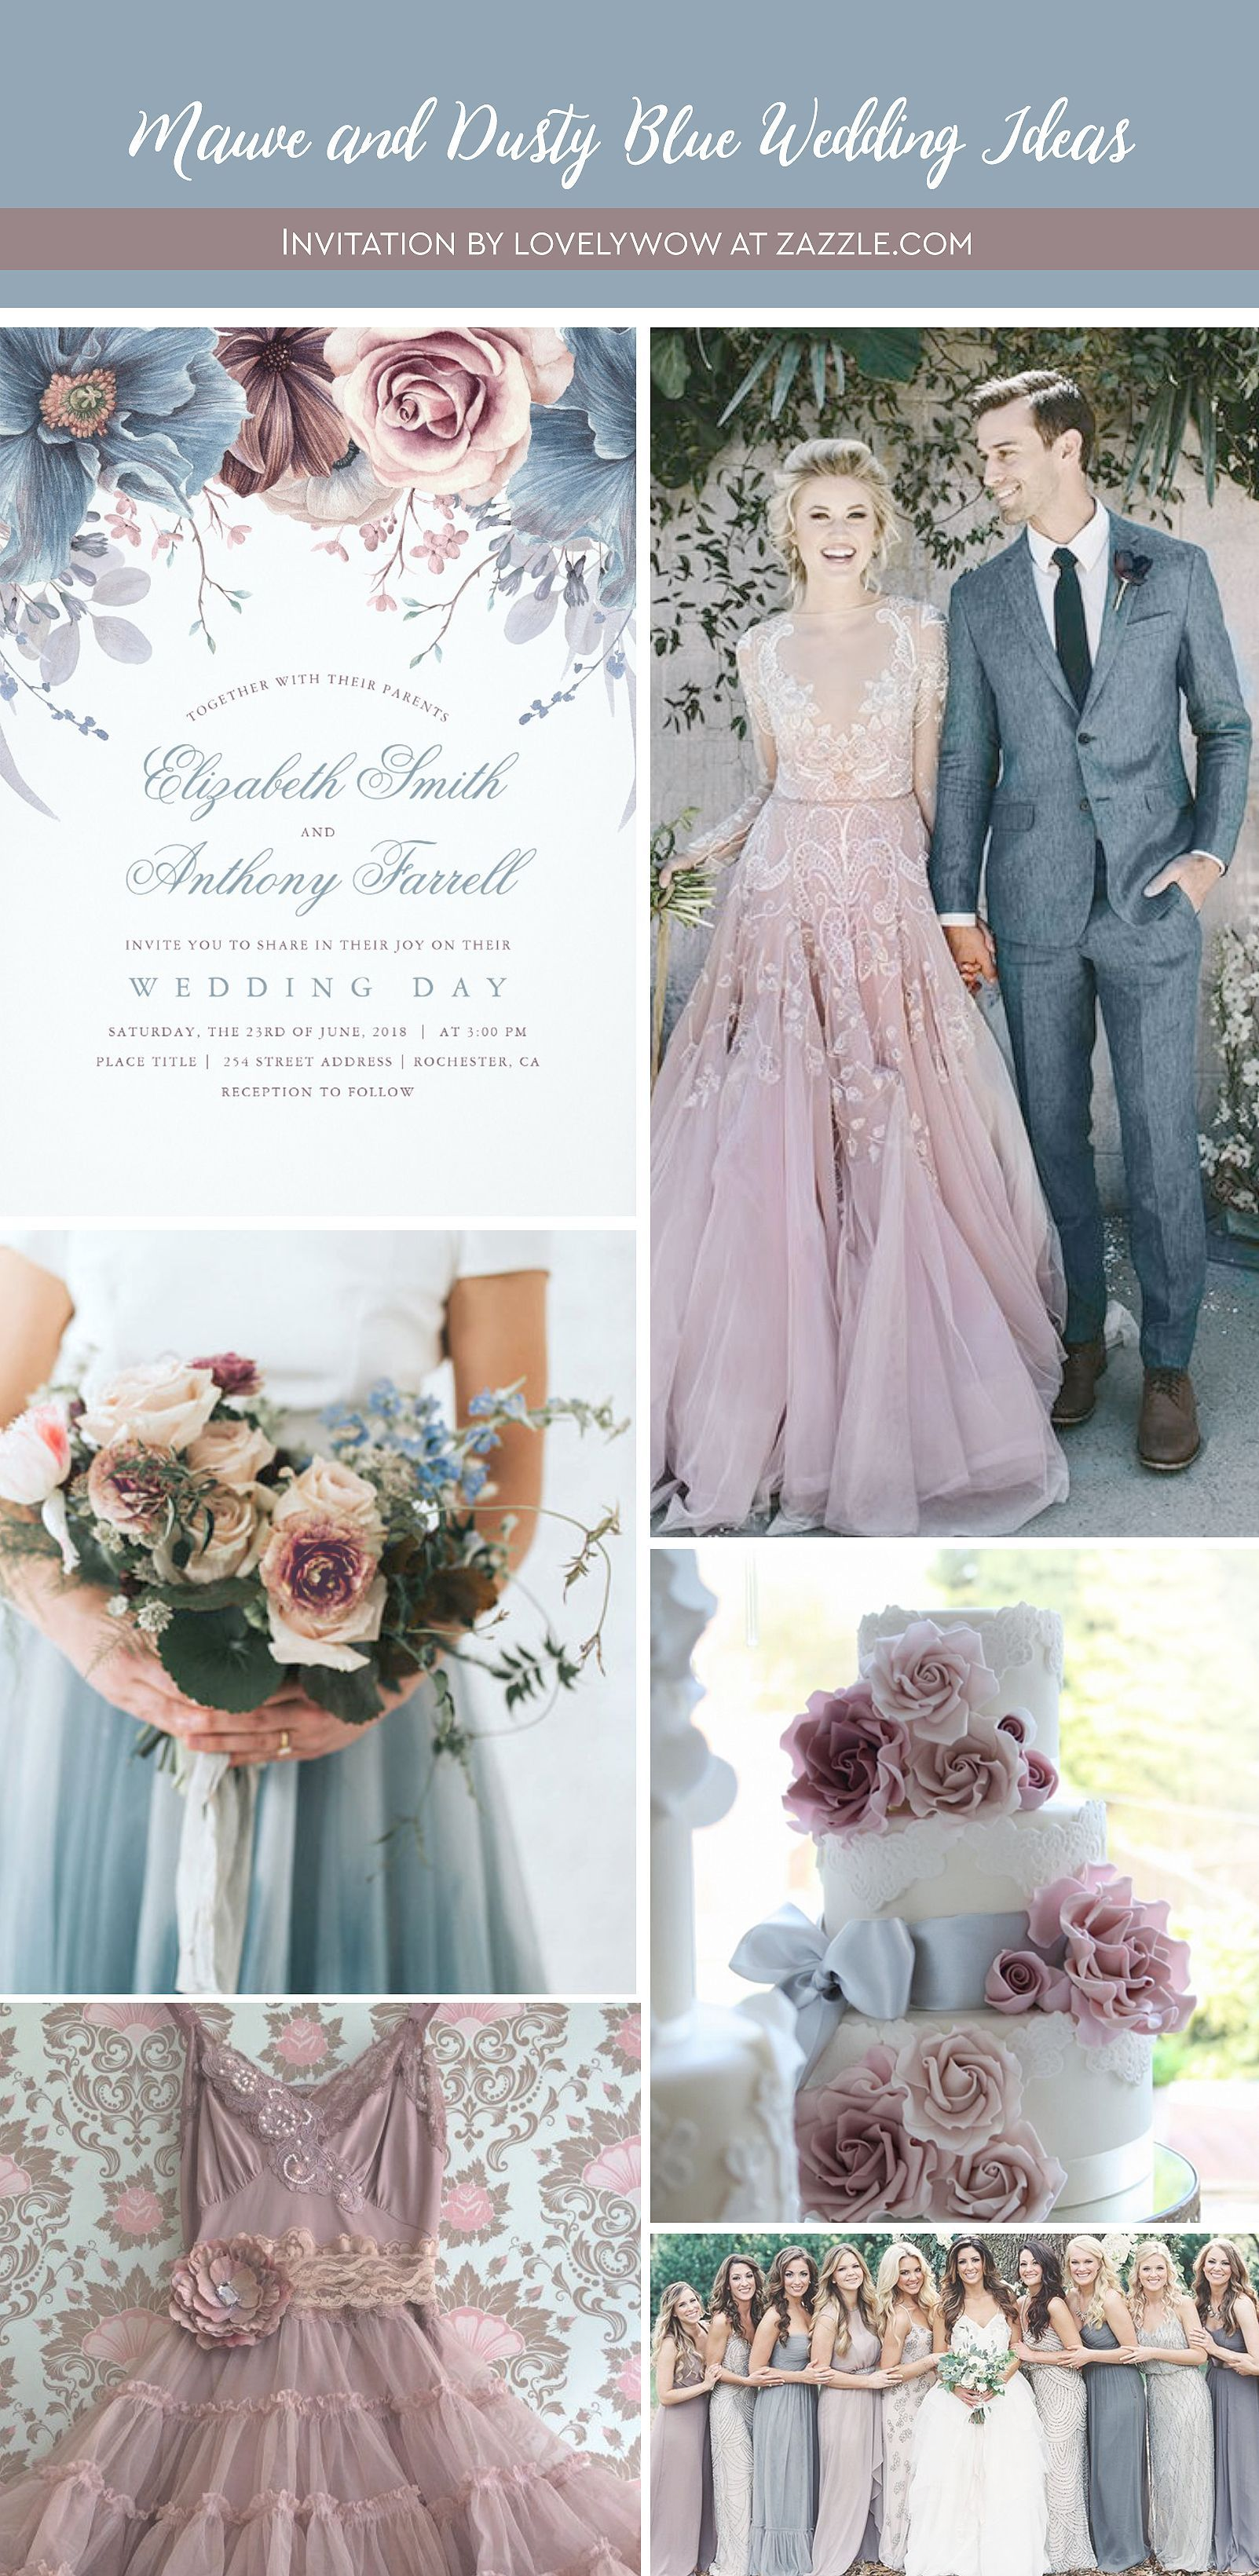 Wedding decorations using pallets october 2018 Dusty Blue and Mauve  Watercolor Floral Wedding Invitation in